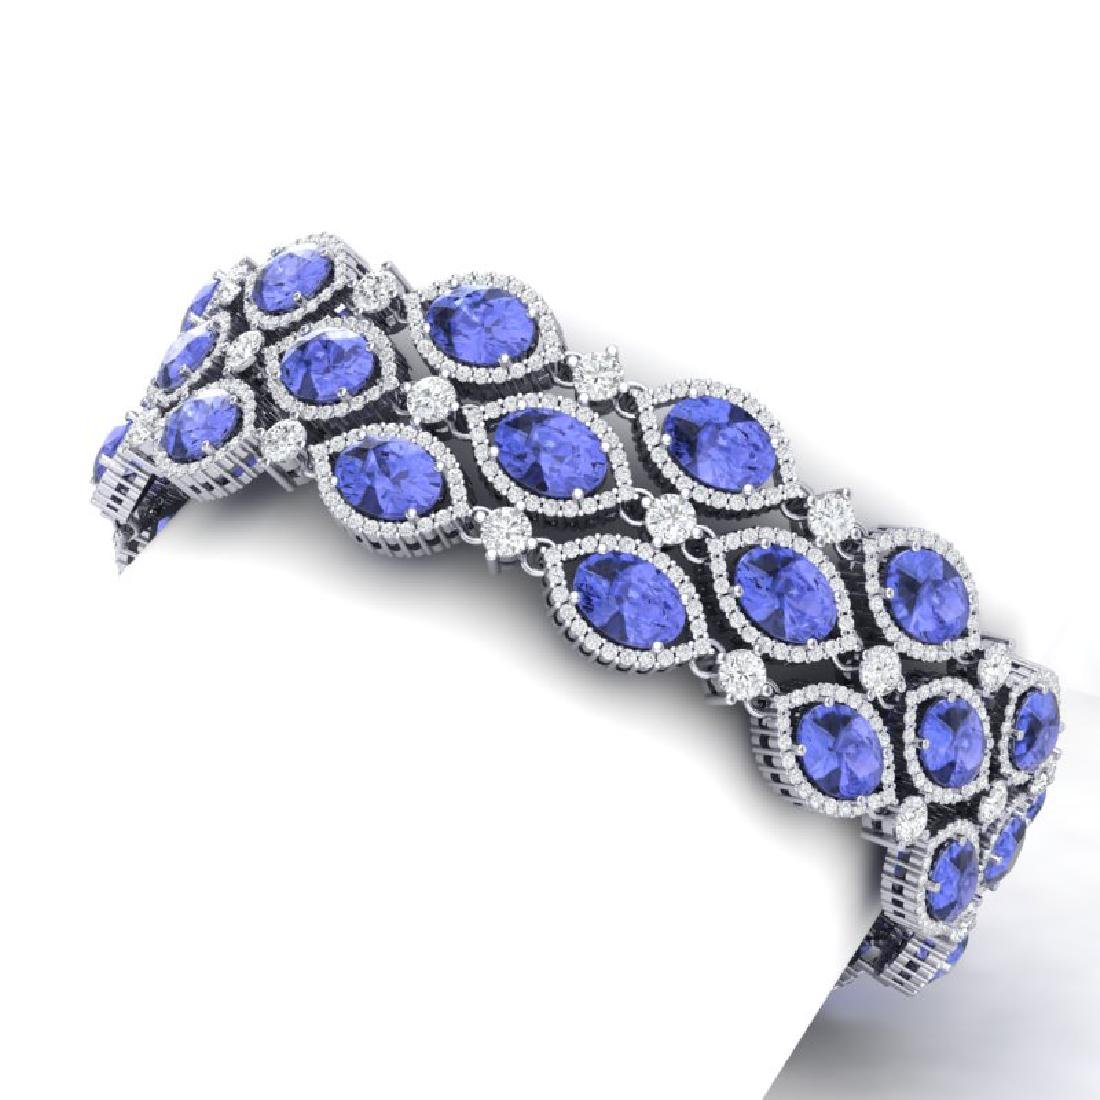 43.16 CTW Royalty Tanzanite & VS Diamond Bracelet 18K - 2